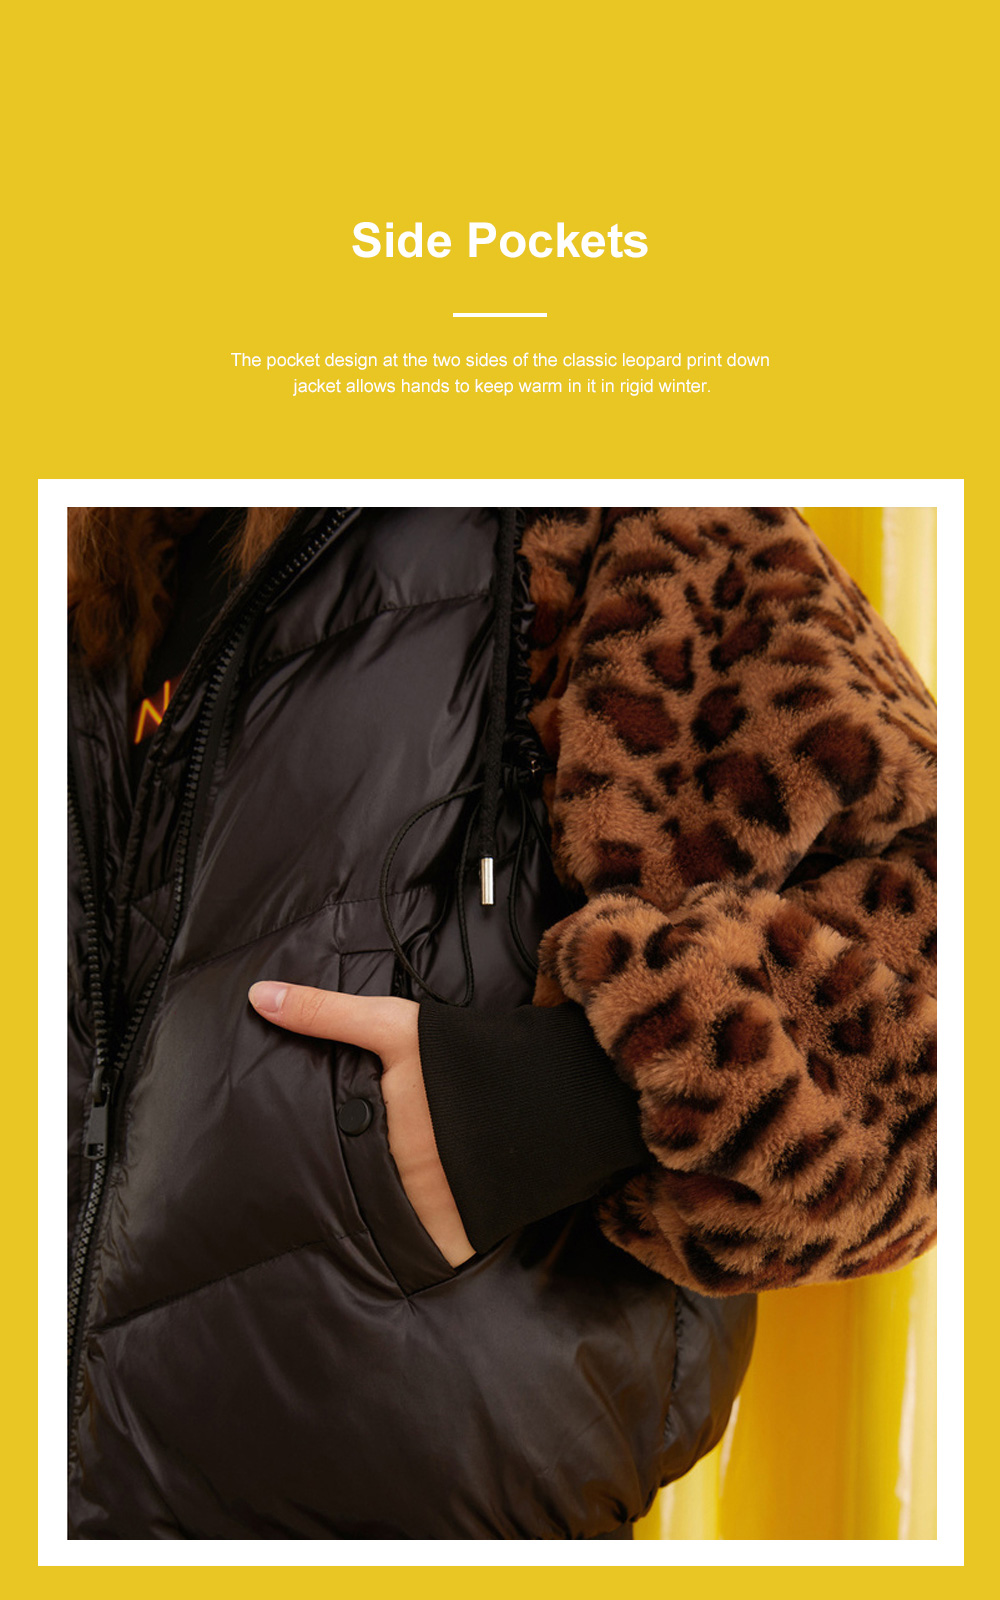 ELF SACK Classic Leopard Print Down Jacket for Women Winter Wear Thickened Splicing Hoody Down Coat Thermal Down Jacket 6